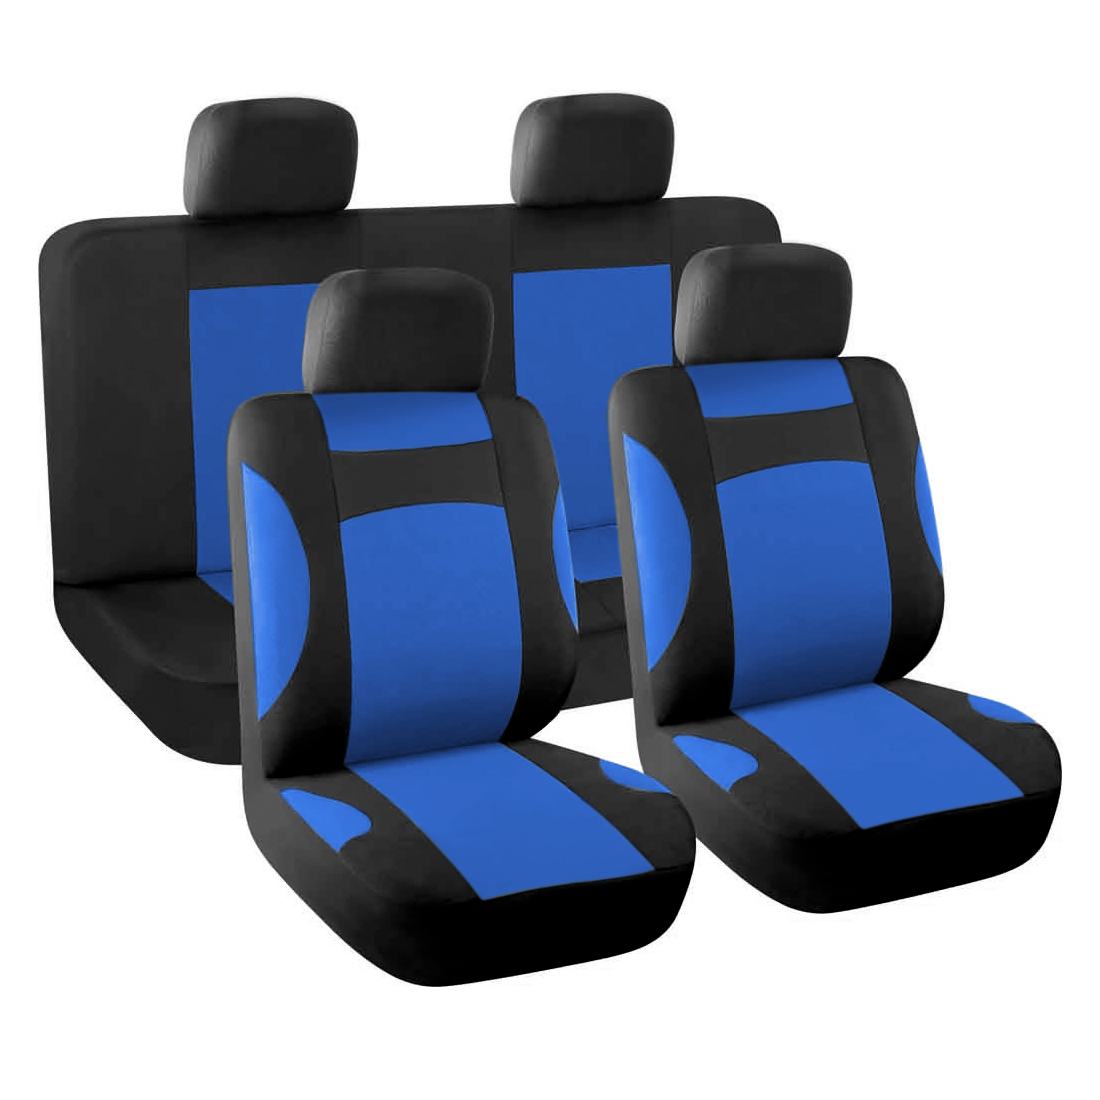 New Car Seat Covers Full Set for Auto w/ 4 Head Rests Blue